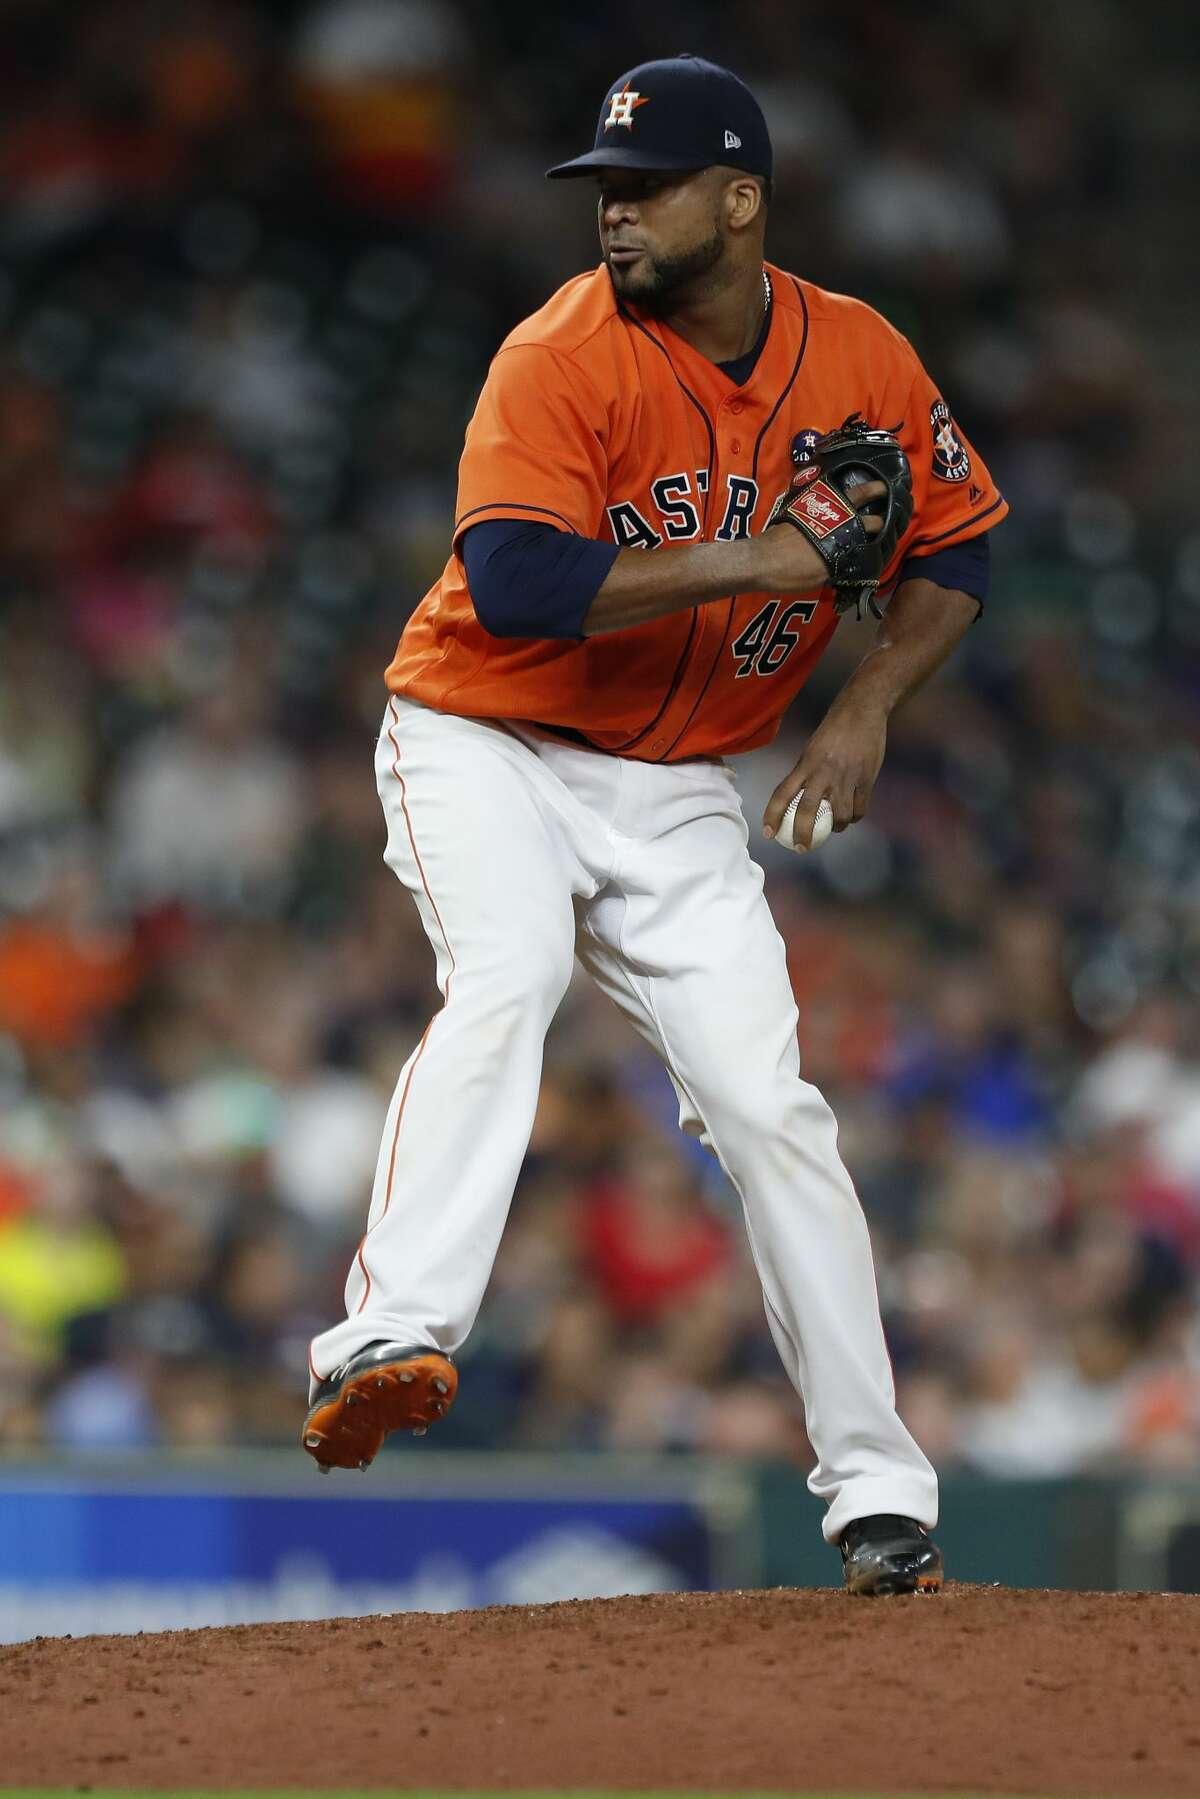 Houston Astros relief pitcher Francisco Liriano (46) pitches during the eighth inning of an MLB baseball game at Minute Maid Park, Friday, Sept. 15, 2017, in Houston. ( Karen Warren / Houston Chronicle )